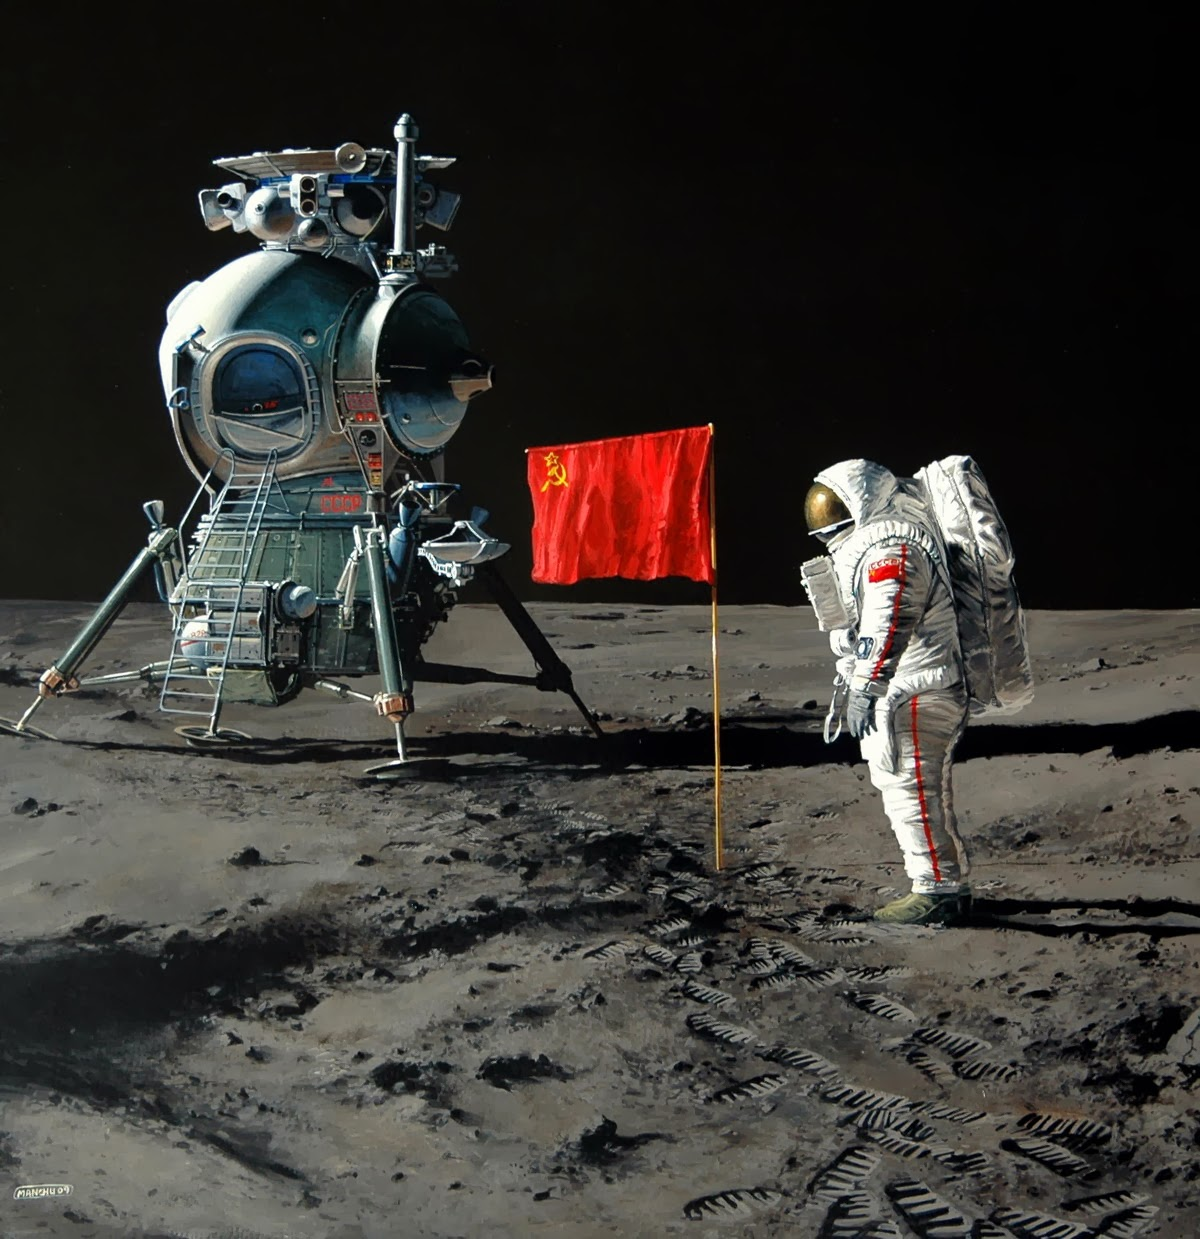 chinese space program history - photo #36